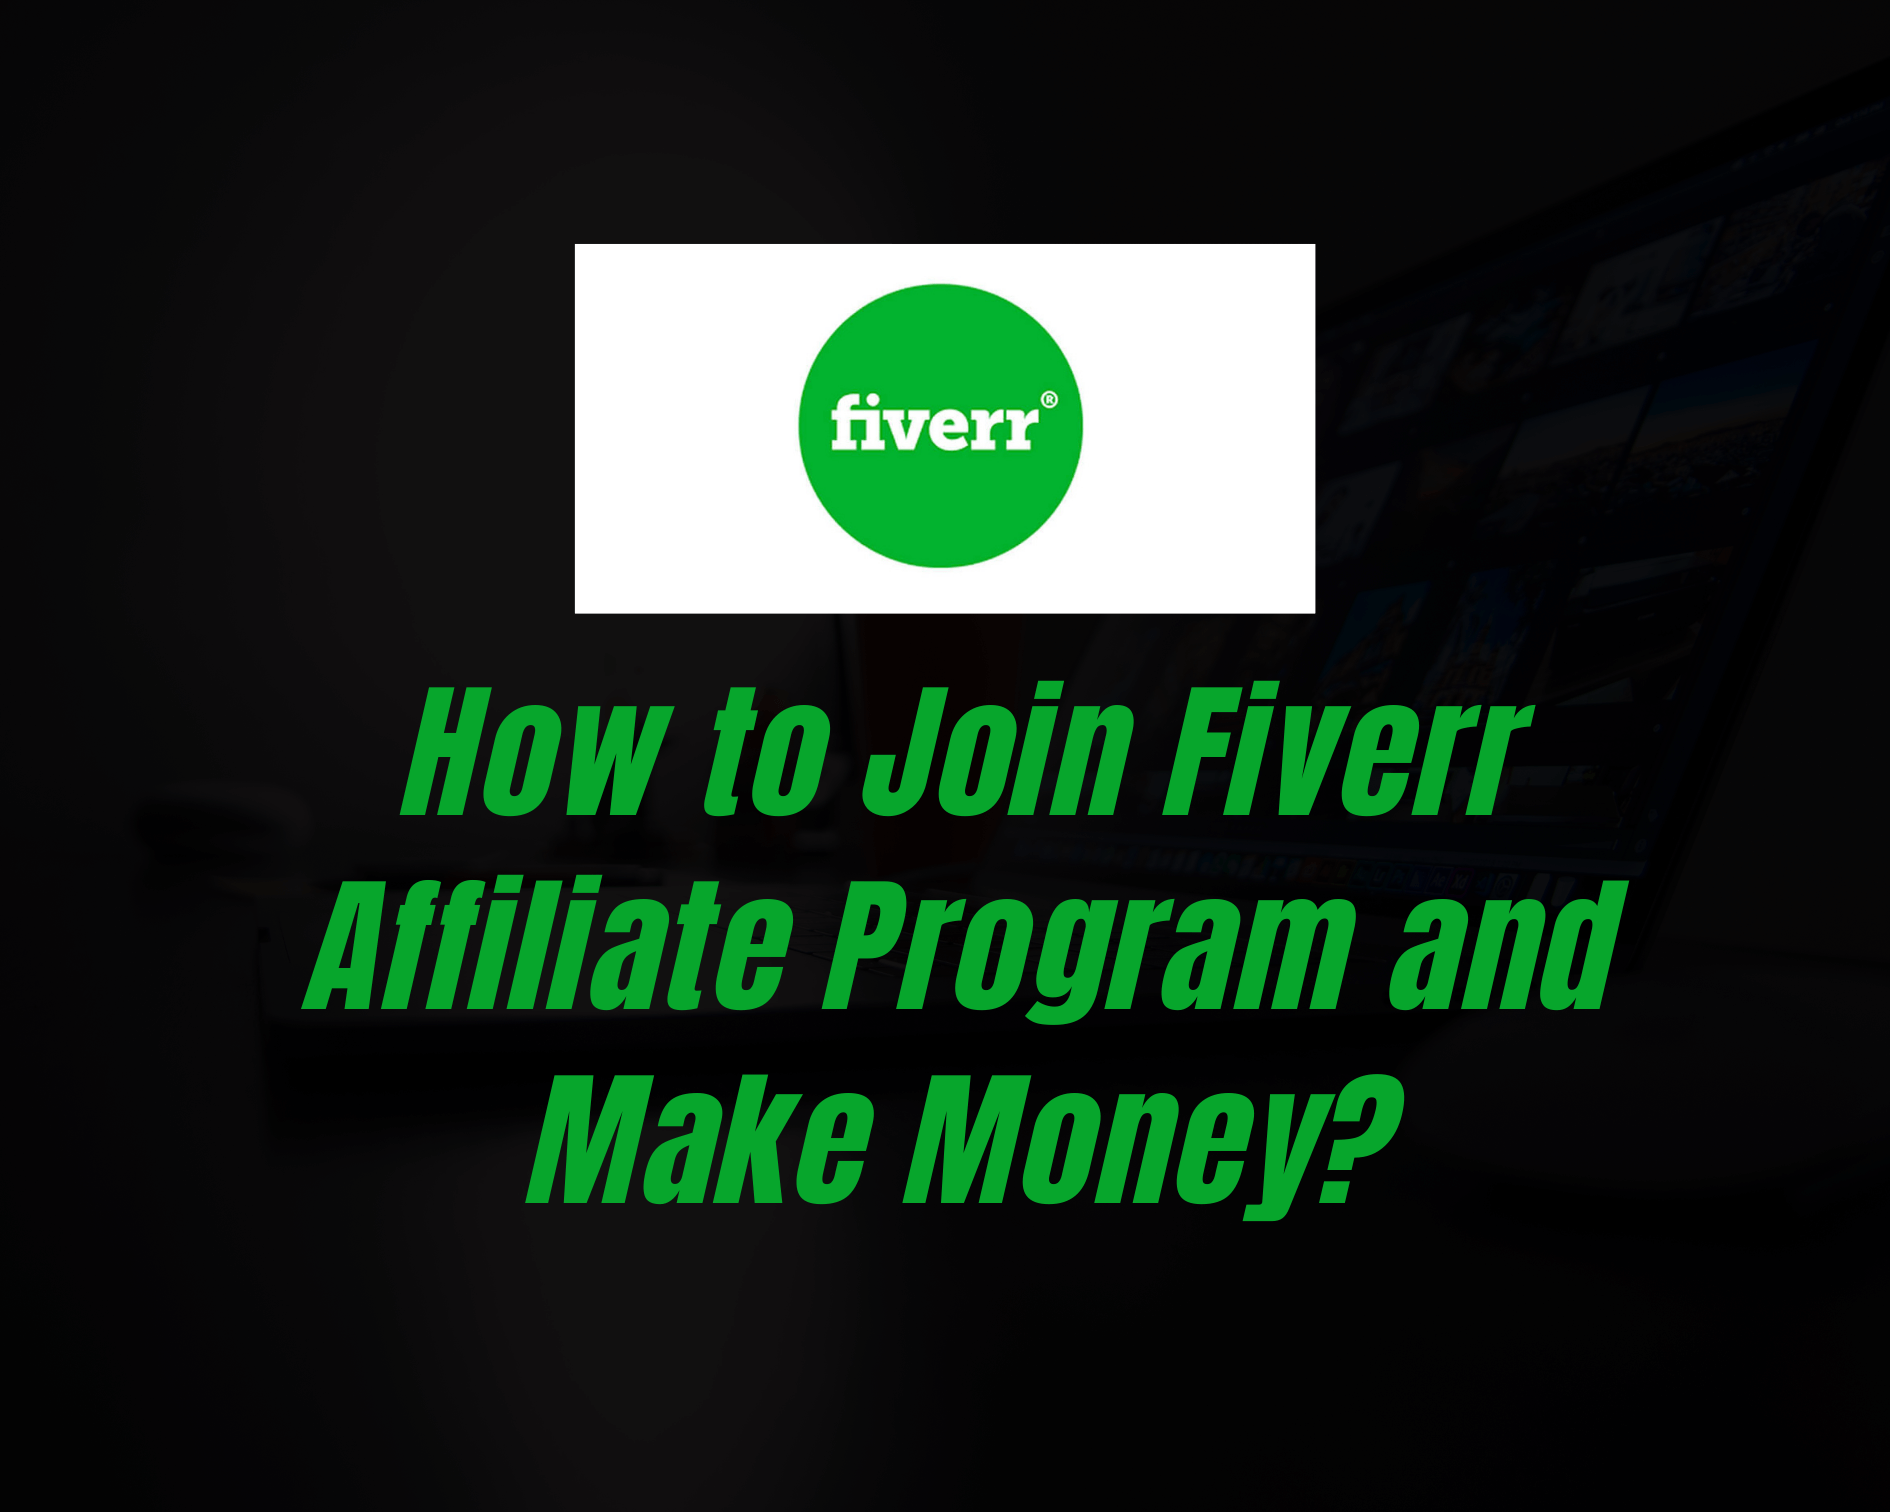 How to Join Fiverr Affiliate Program and Make Money?